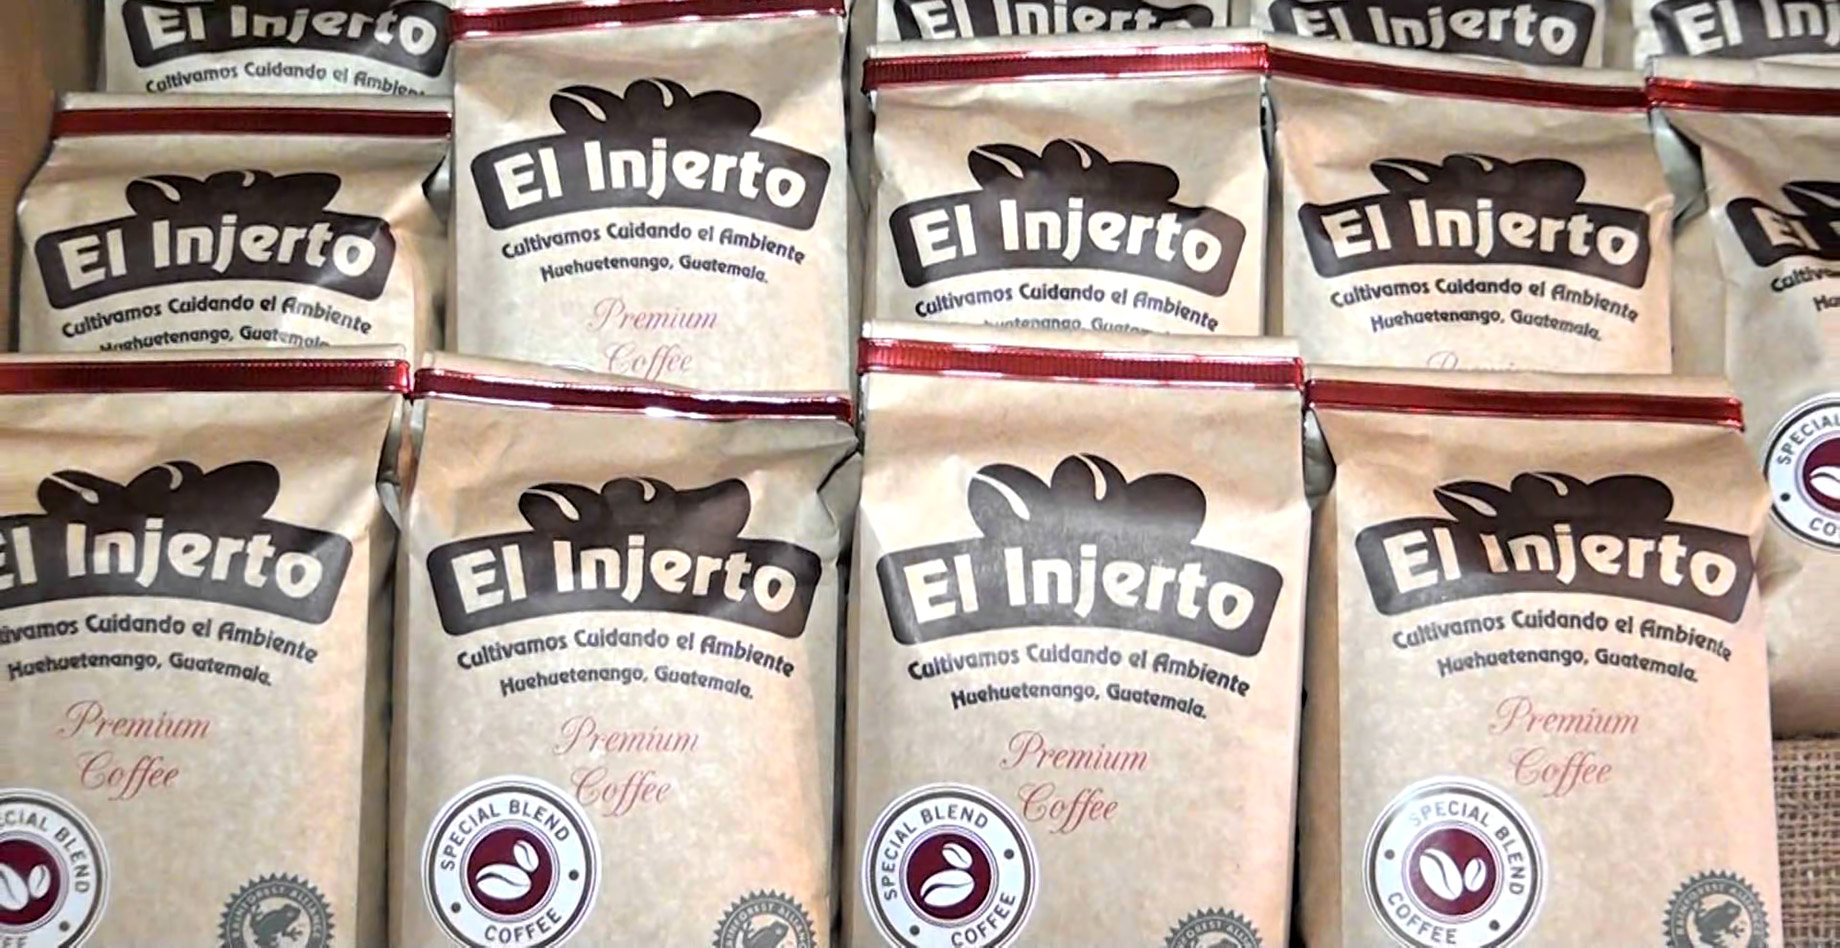 El Injerto - Huehuetenango, Guatemala - One of the Most Expensive Coffees in the World